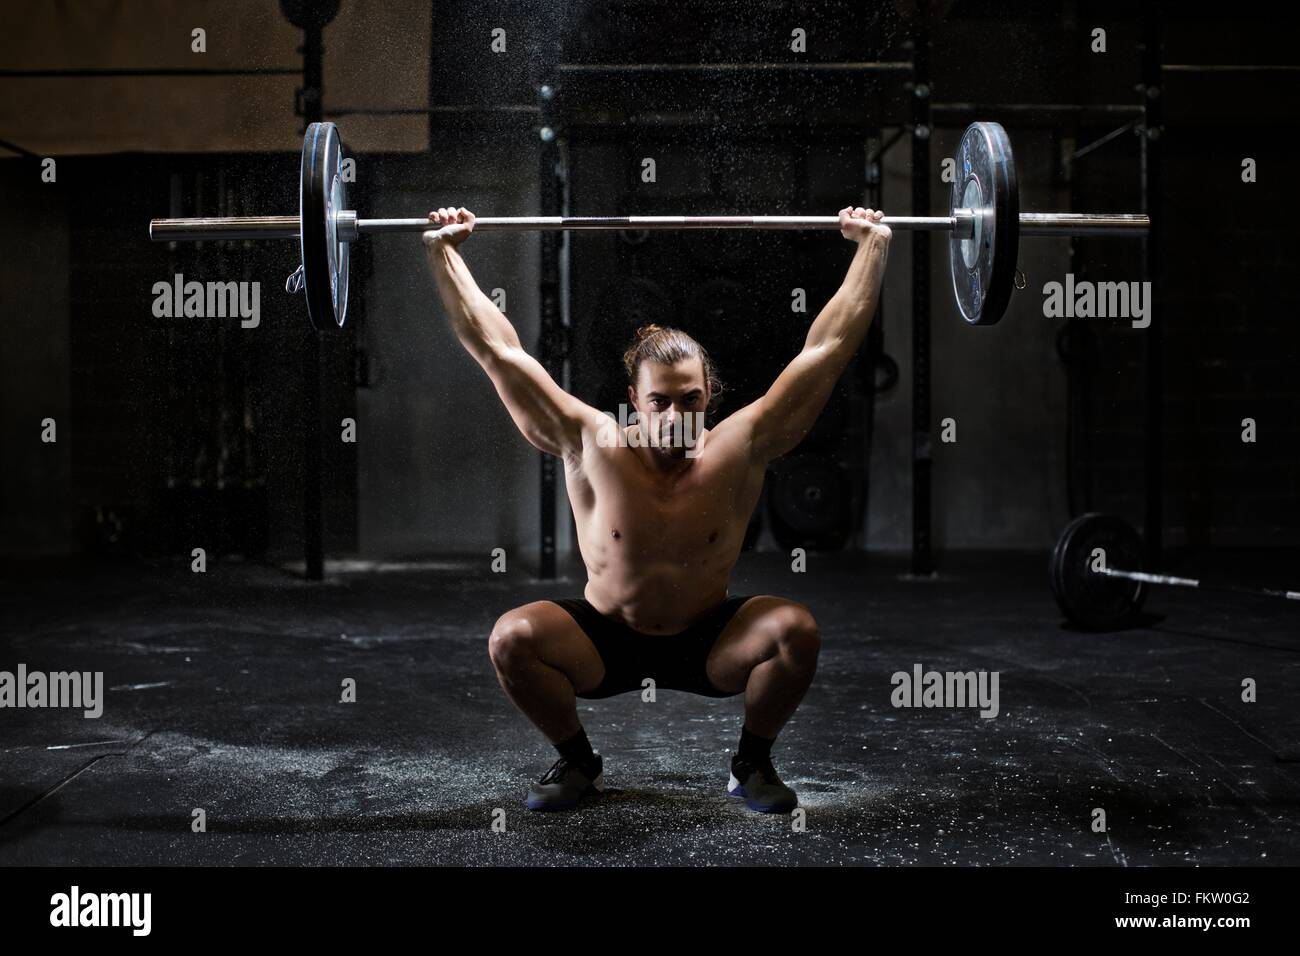 Bare chested young man weightlifting barbell in dark gym Stock Photo